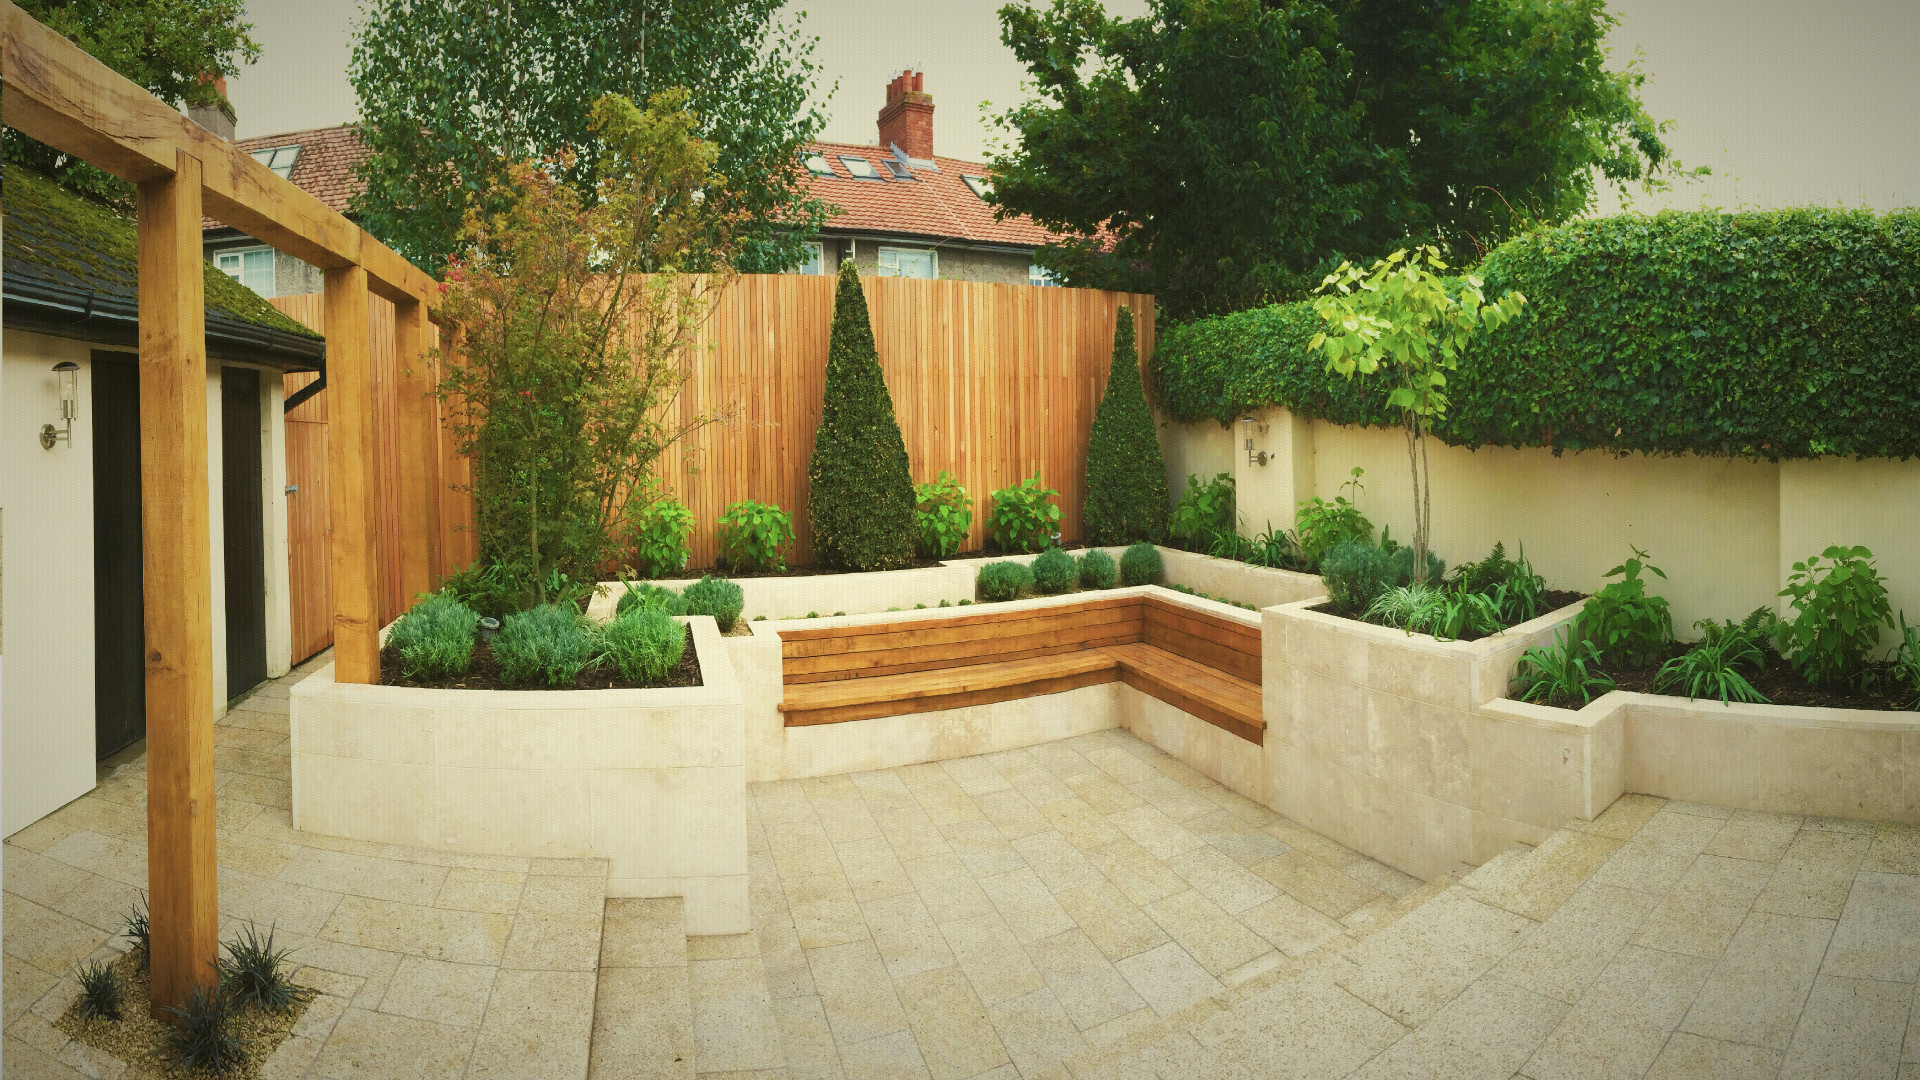 Stylish Sanctuary. Tim Austen Garden Designs   Designer gardens  consultations